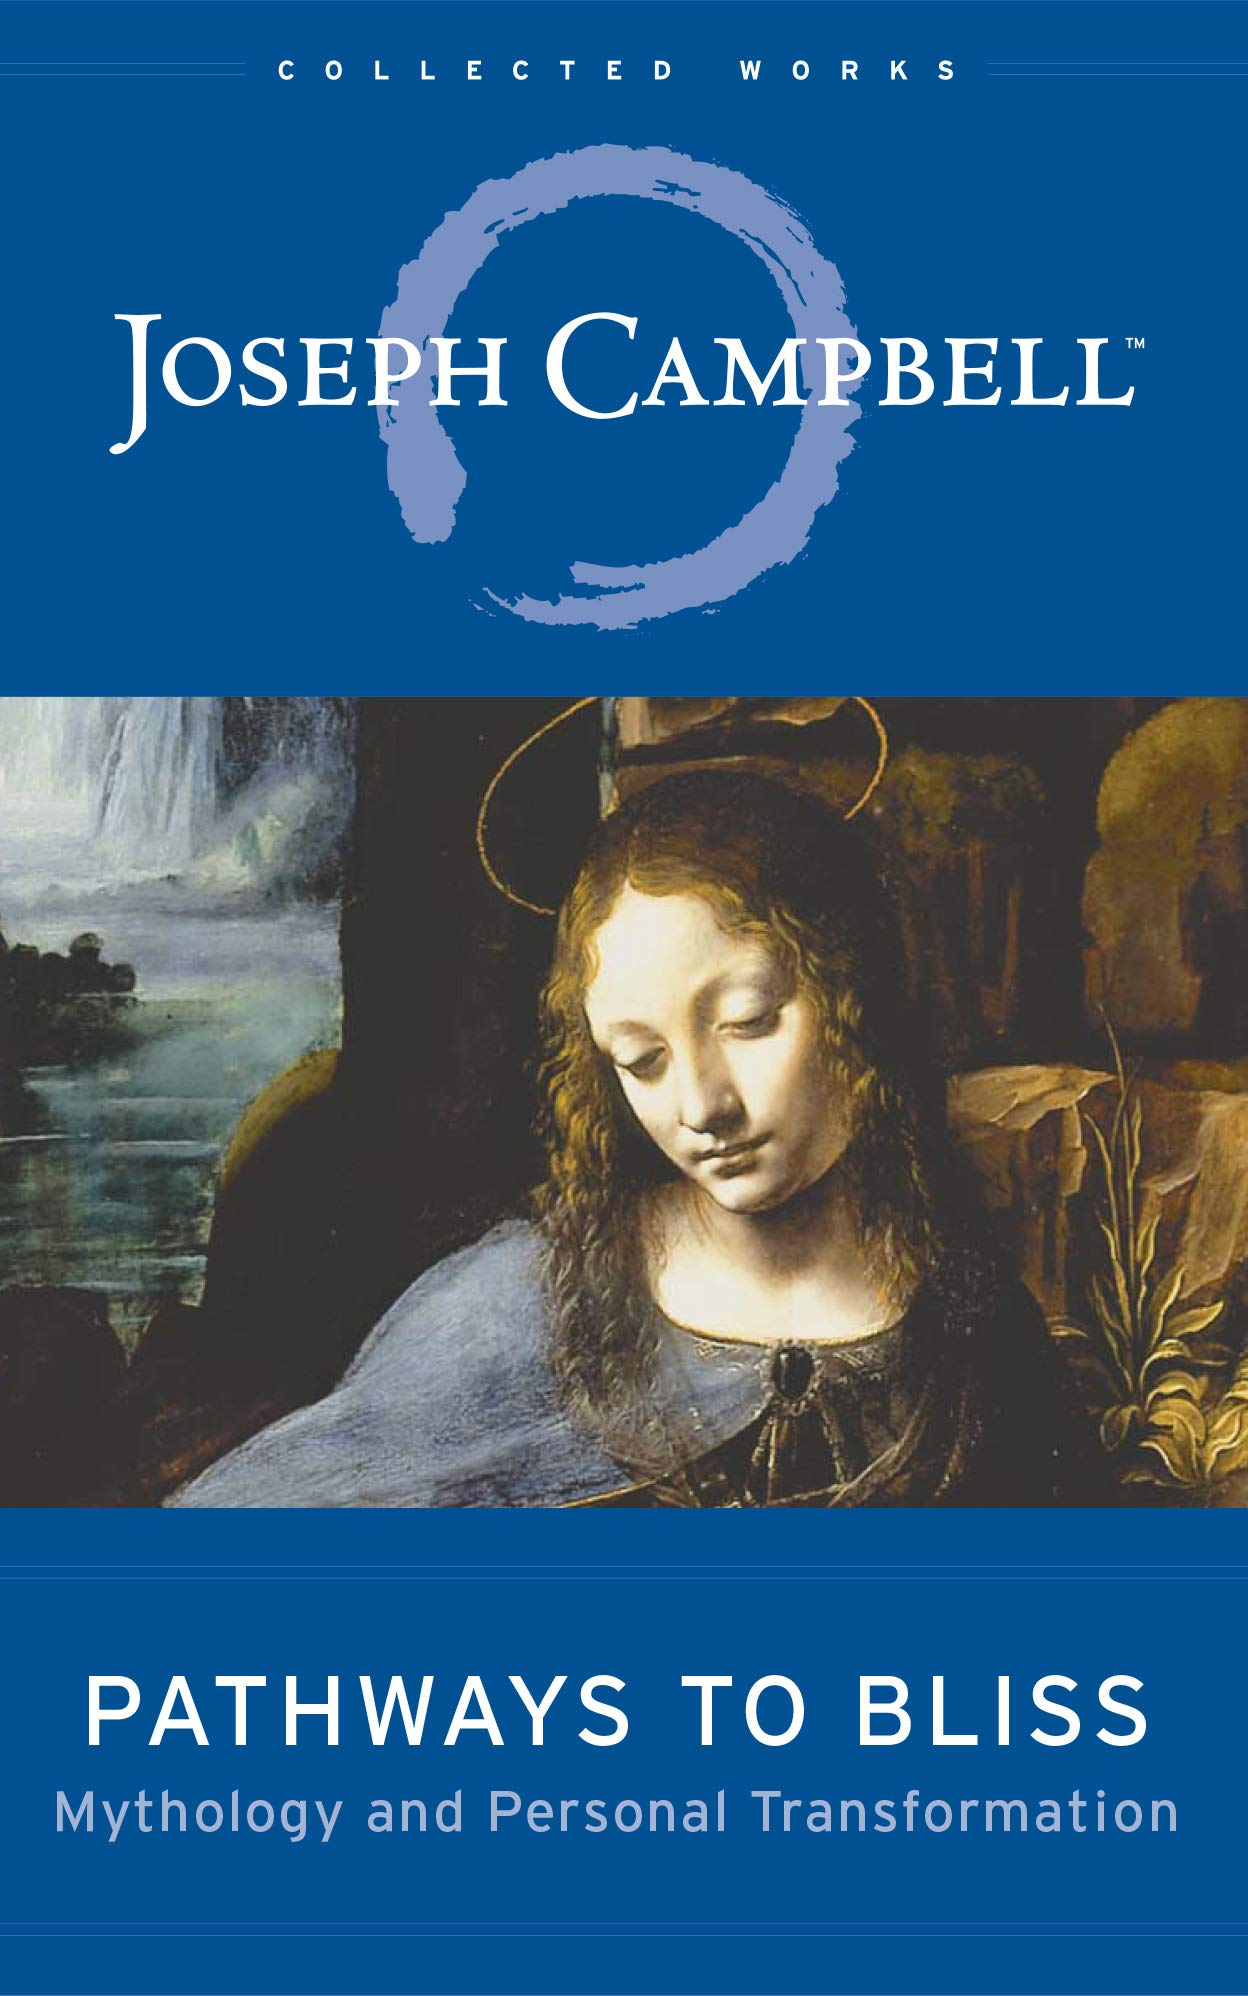 Pathways To Bliss  Mythology And Personal Transformation  The Collected Works Of Joseph Campbell Book 13   English Edition